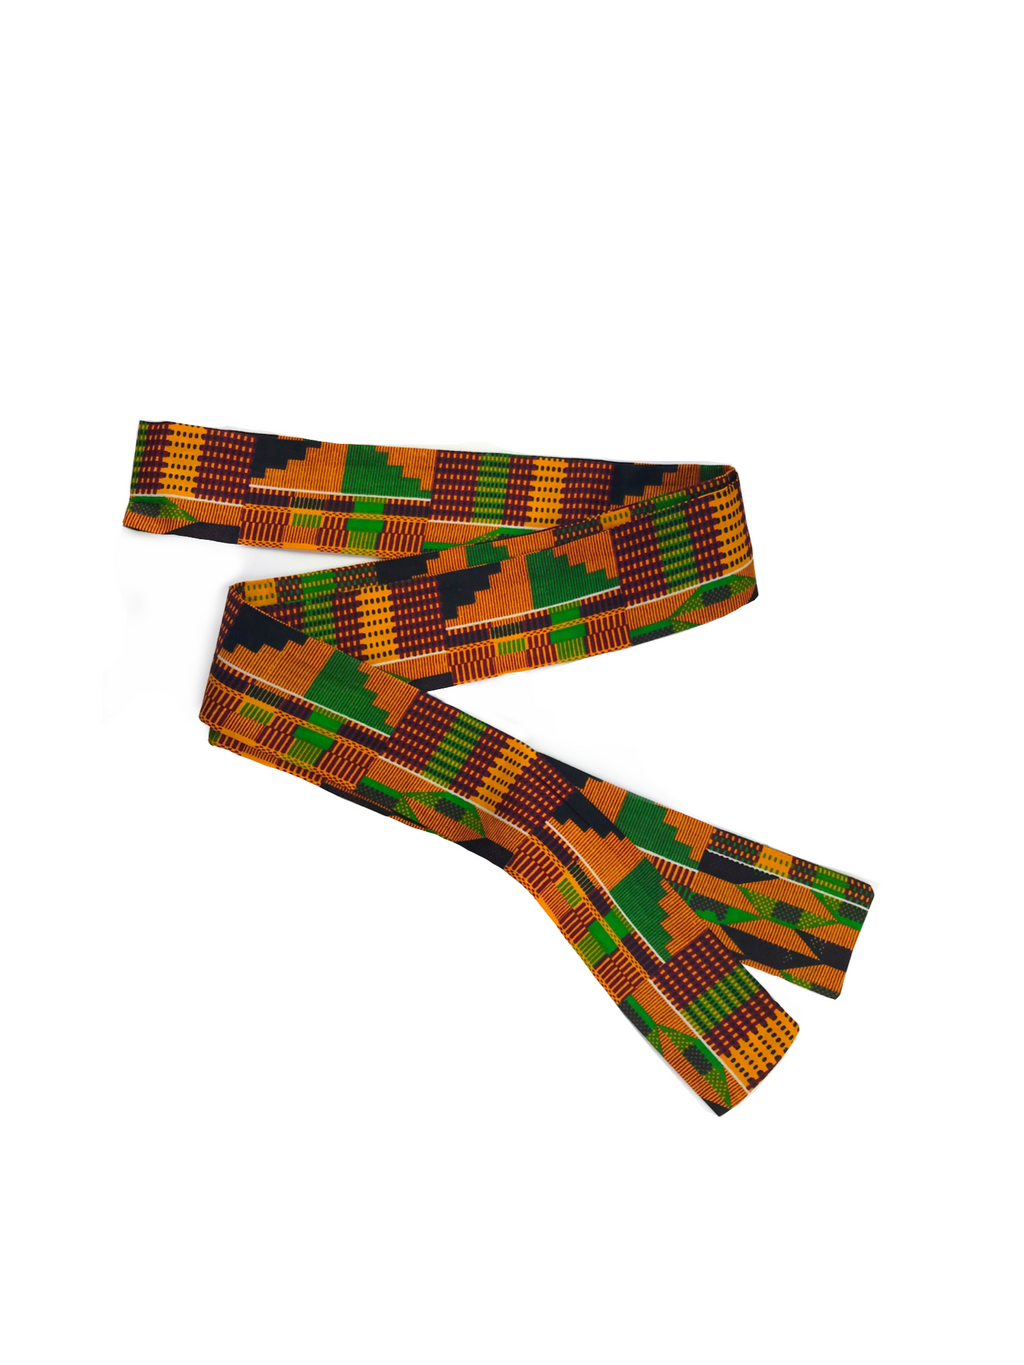 Kente Sash Belt - Chen Burkett New York